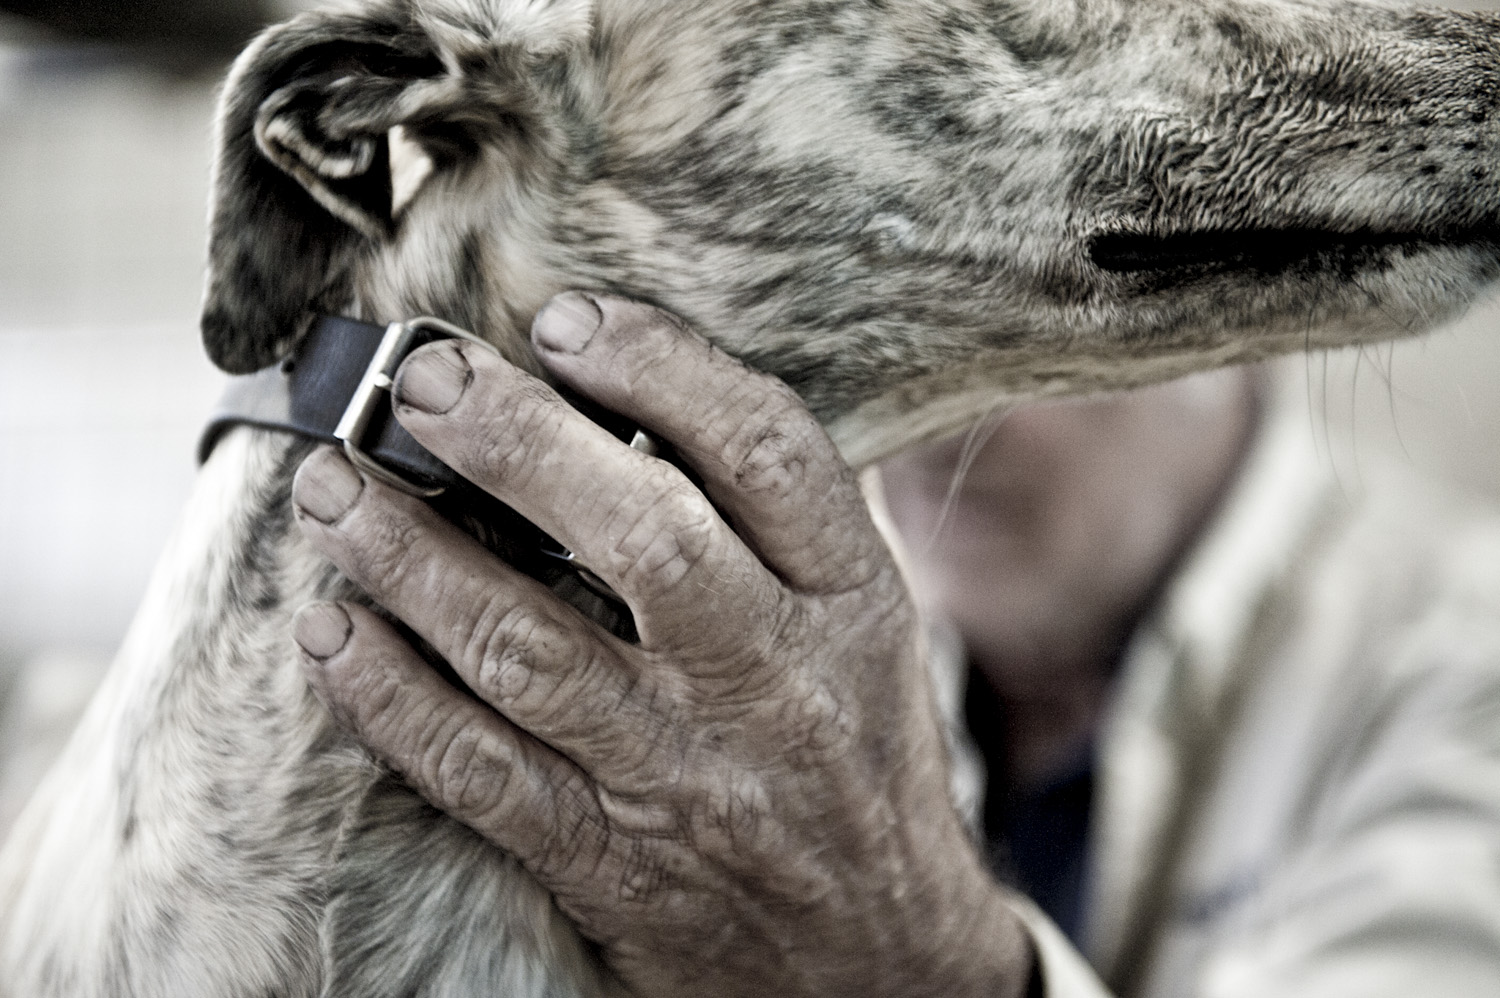 image of AARONTAIT COPYRIGHTED 2014 443 DOCUMENTARY PHOTOGRAPHER REPORTAGE LIFE SPORT DOGS GREYHOUND RACING STORY HUMAN DISHLICKER DISH LICKER HANDS TEXTURE TRUST